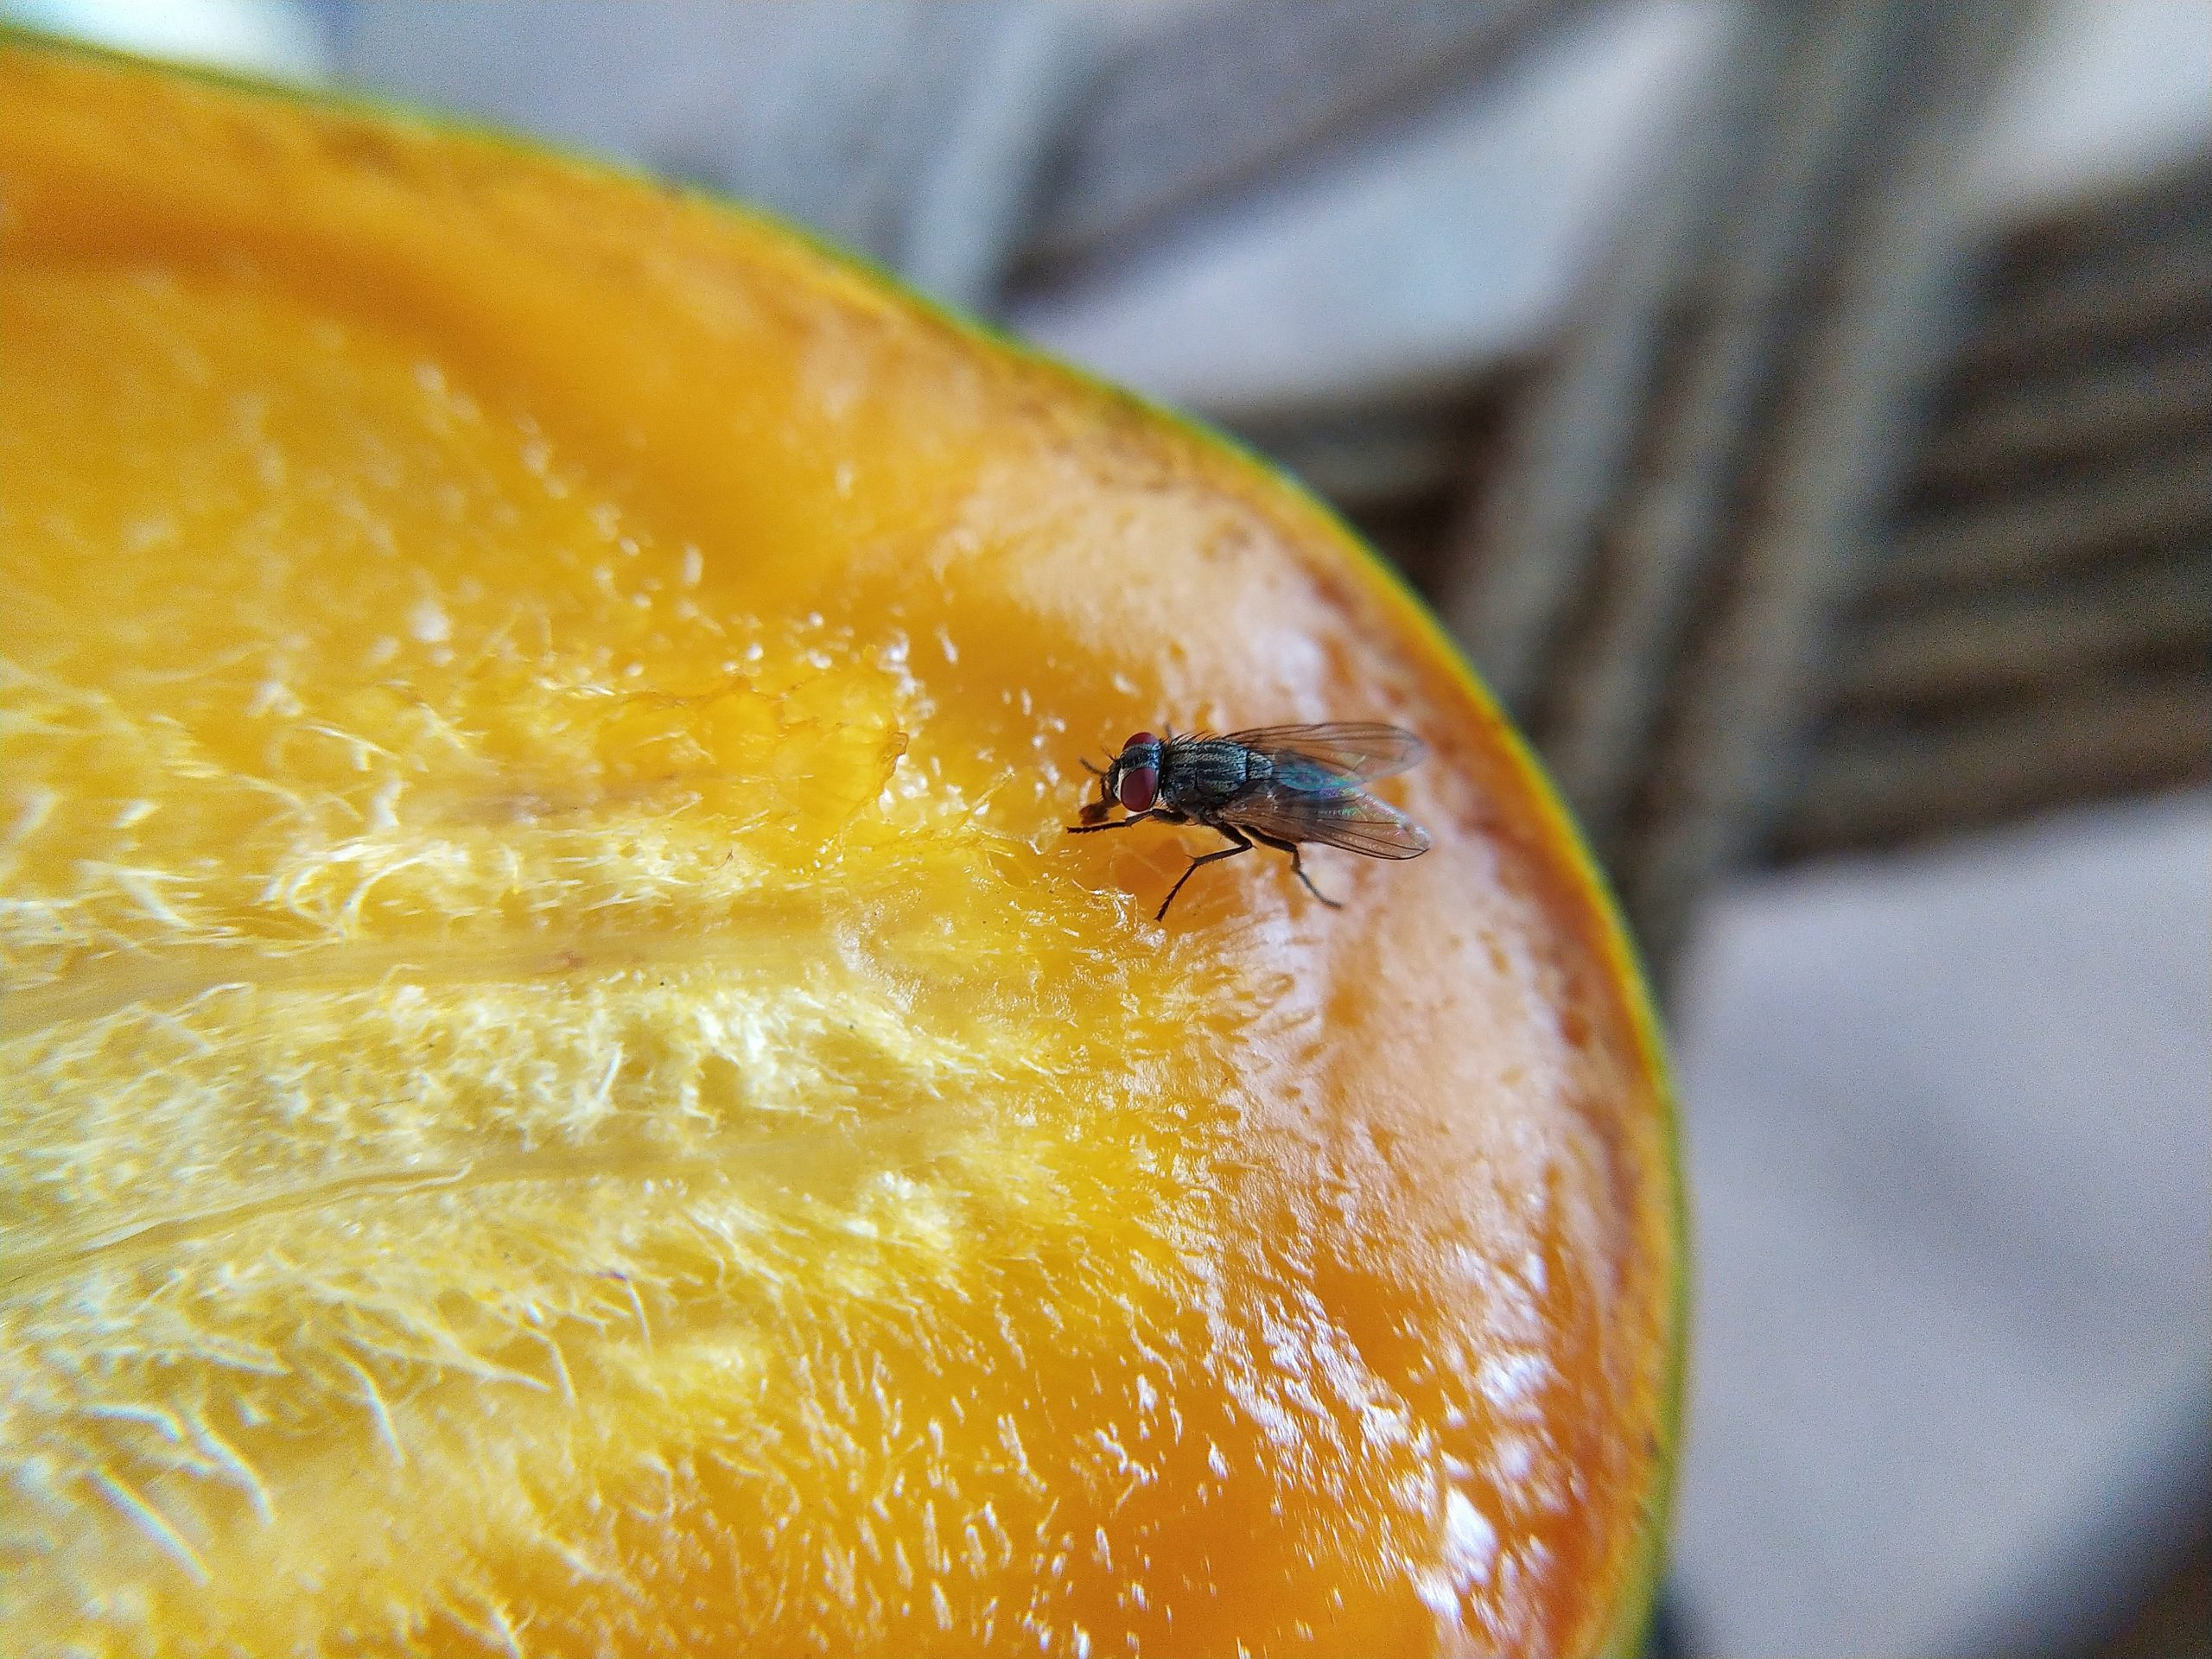 A housefly on a mango slice